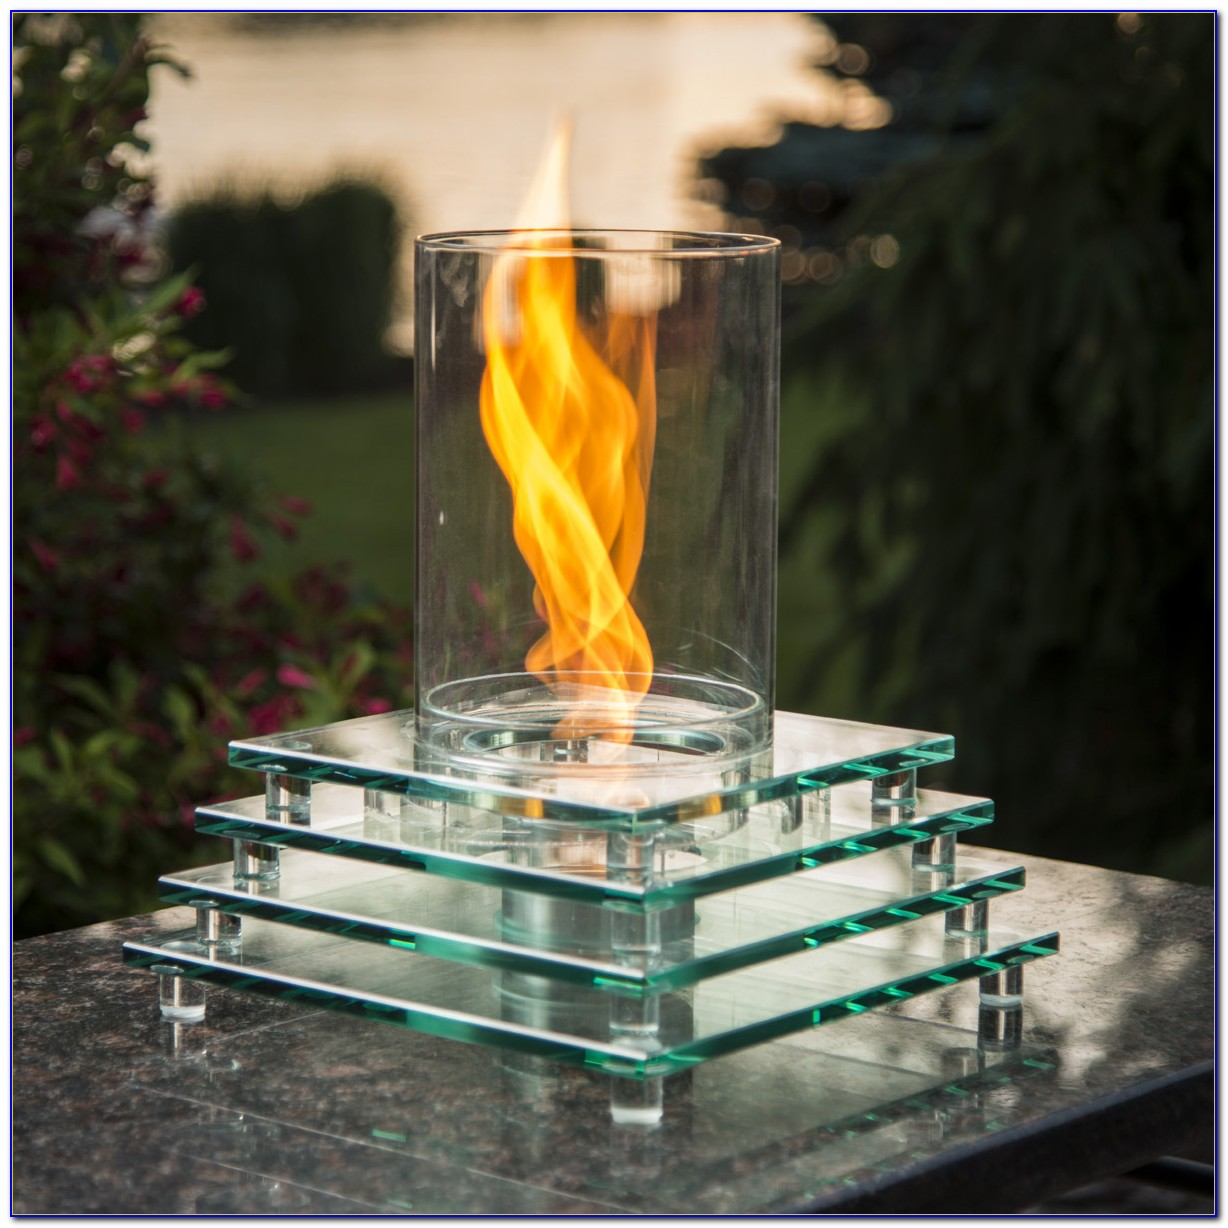 1ib Brighten Tabletop Gas Fire Pit